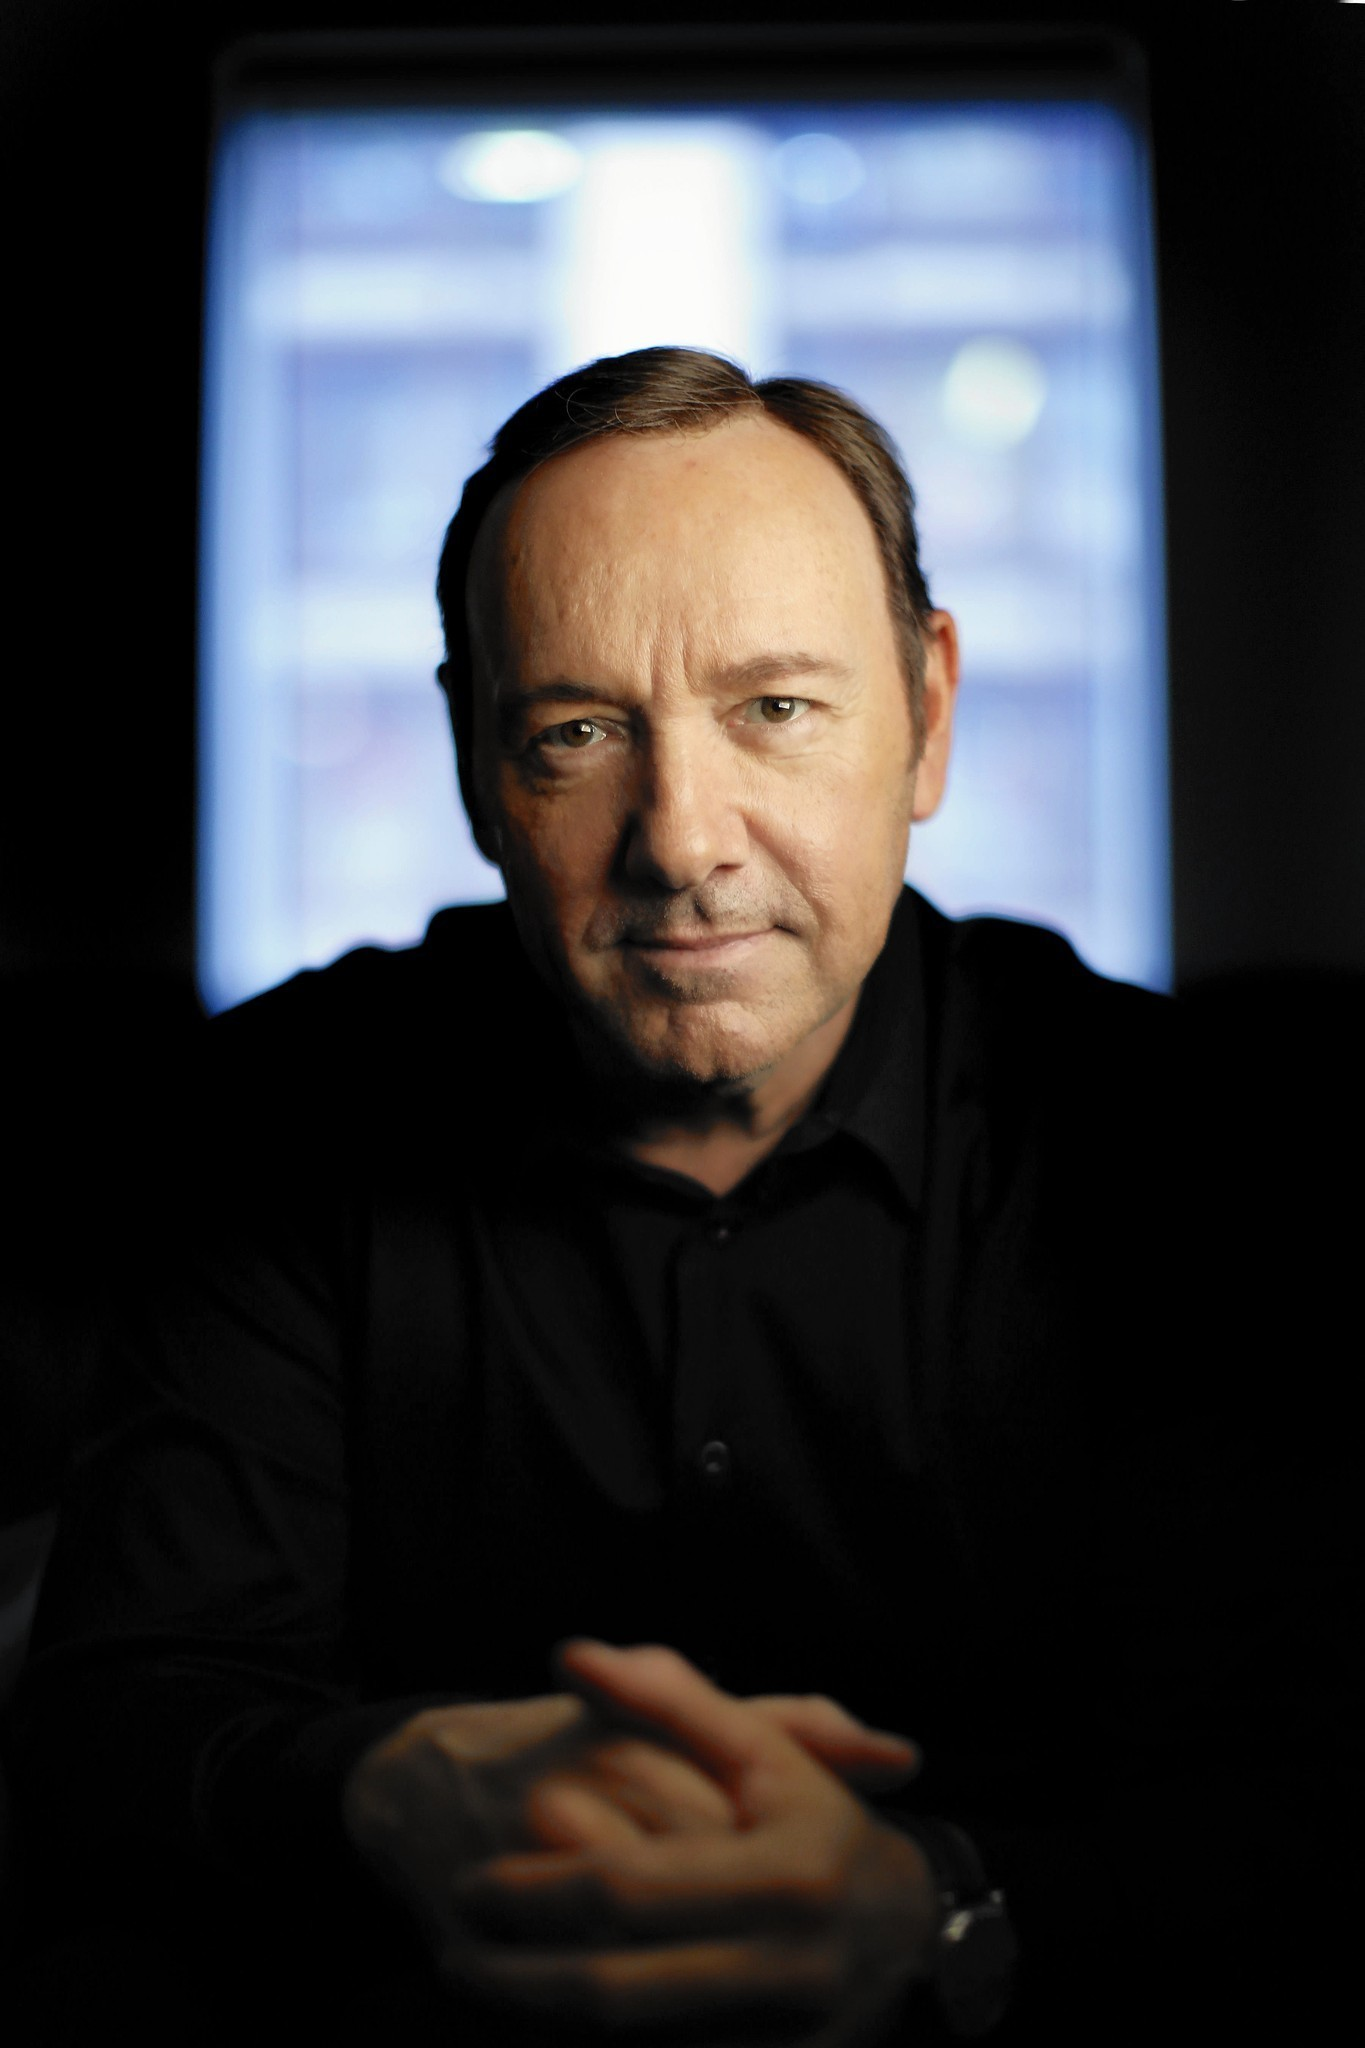 kevin spacey - photo #12